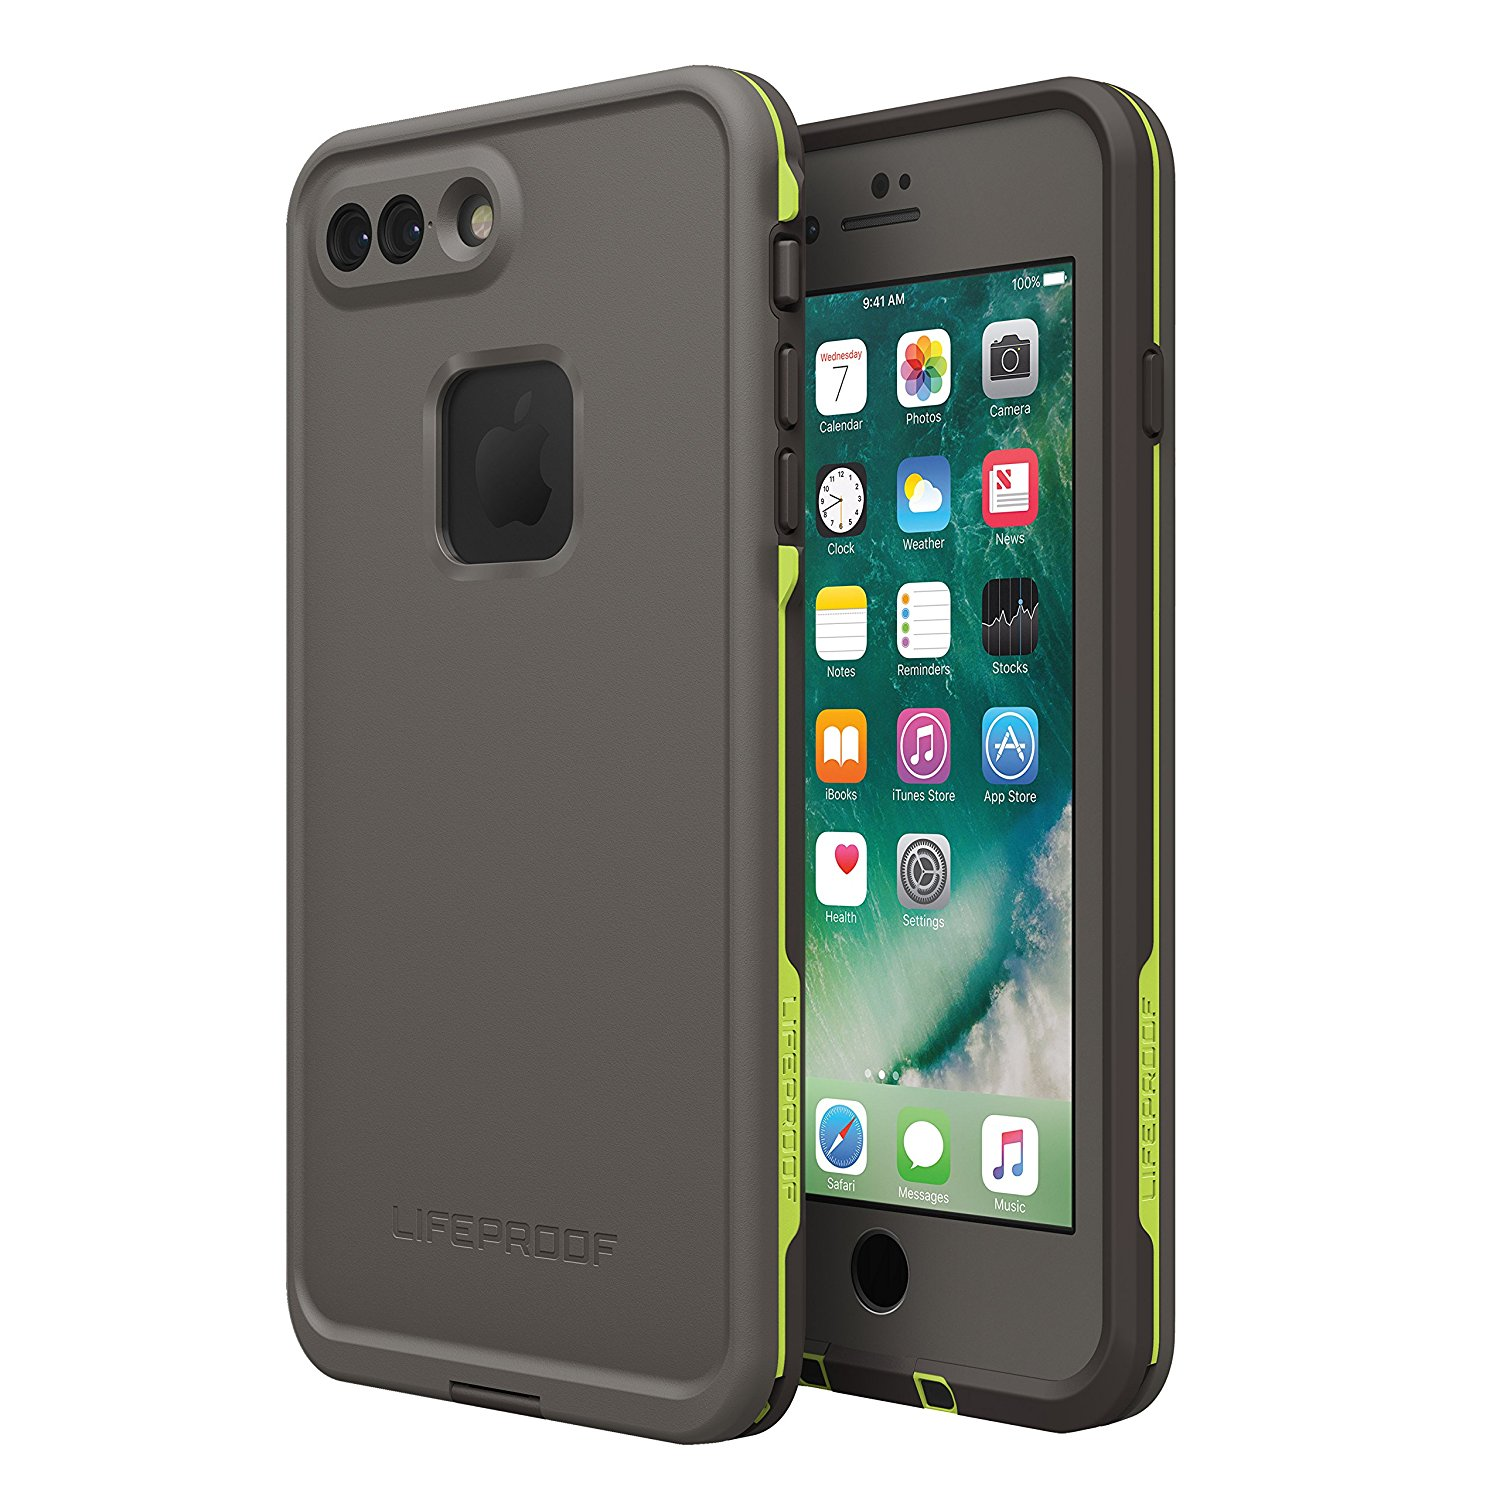 LifeProof FRE Series Waterproof Case for iPhone 7 Plus-0